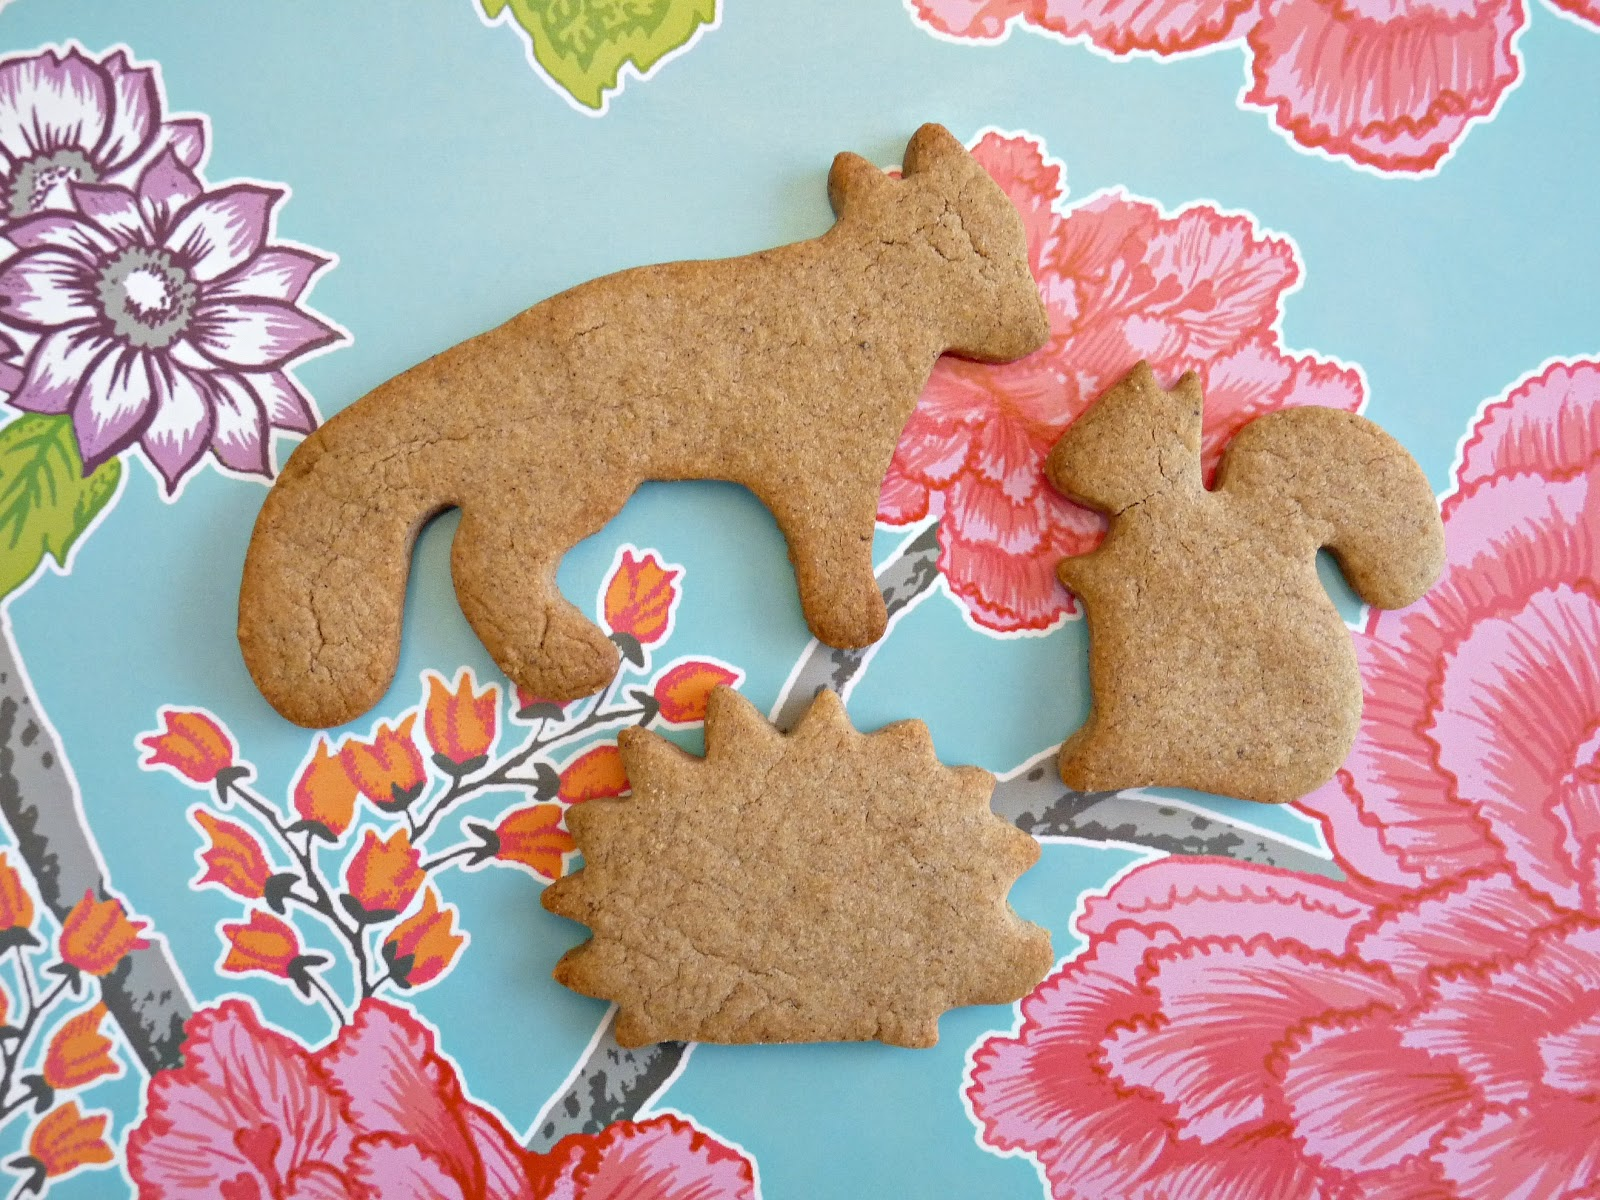 Wildlife cookie cutter shapes